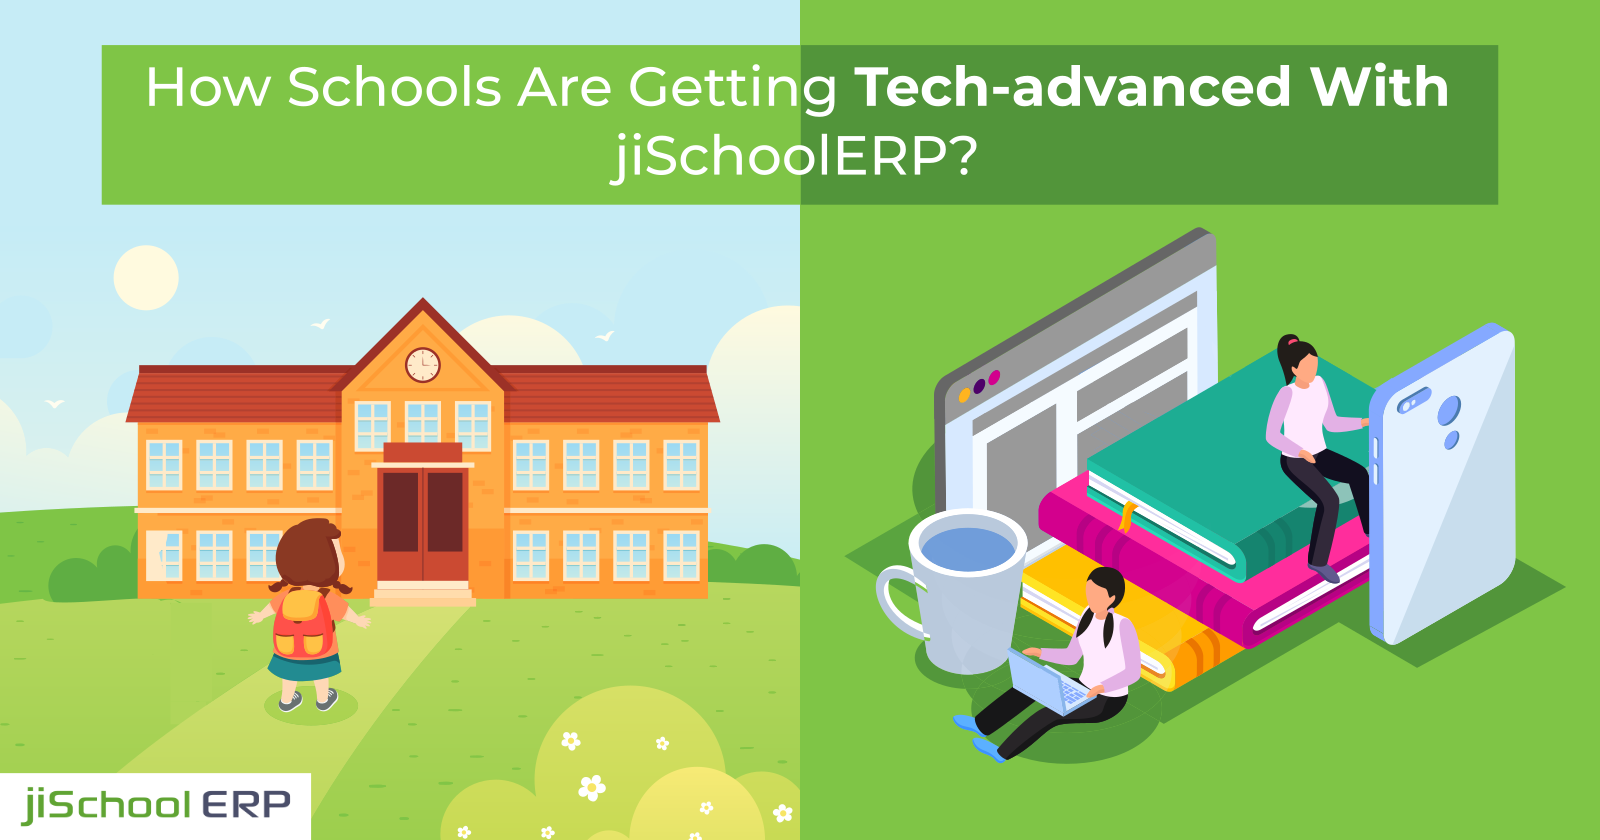 How Schools Are Getting Tech-advanced With jiSchoolERP?